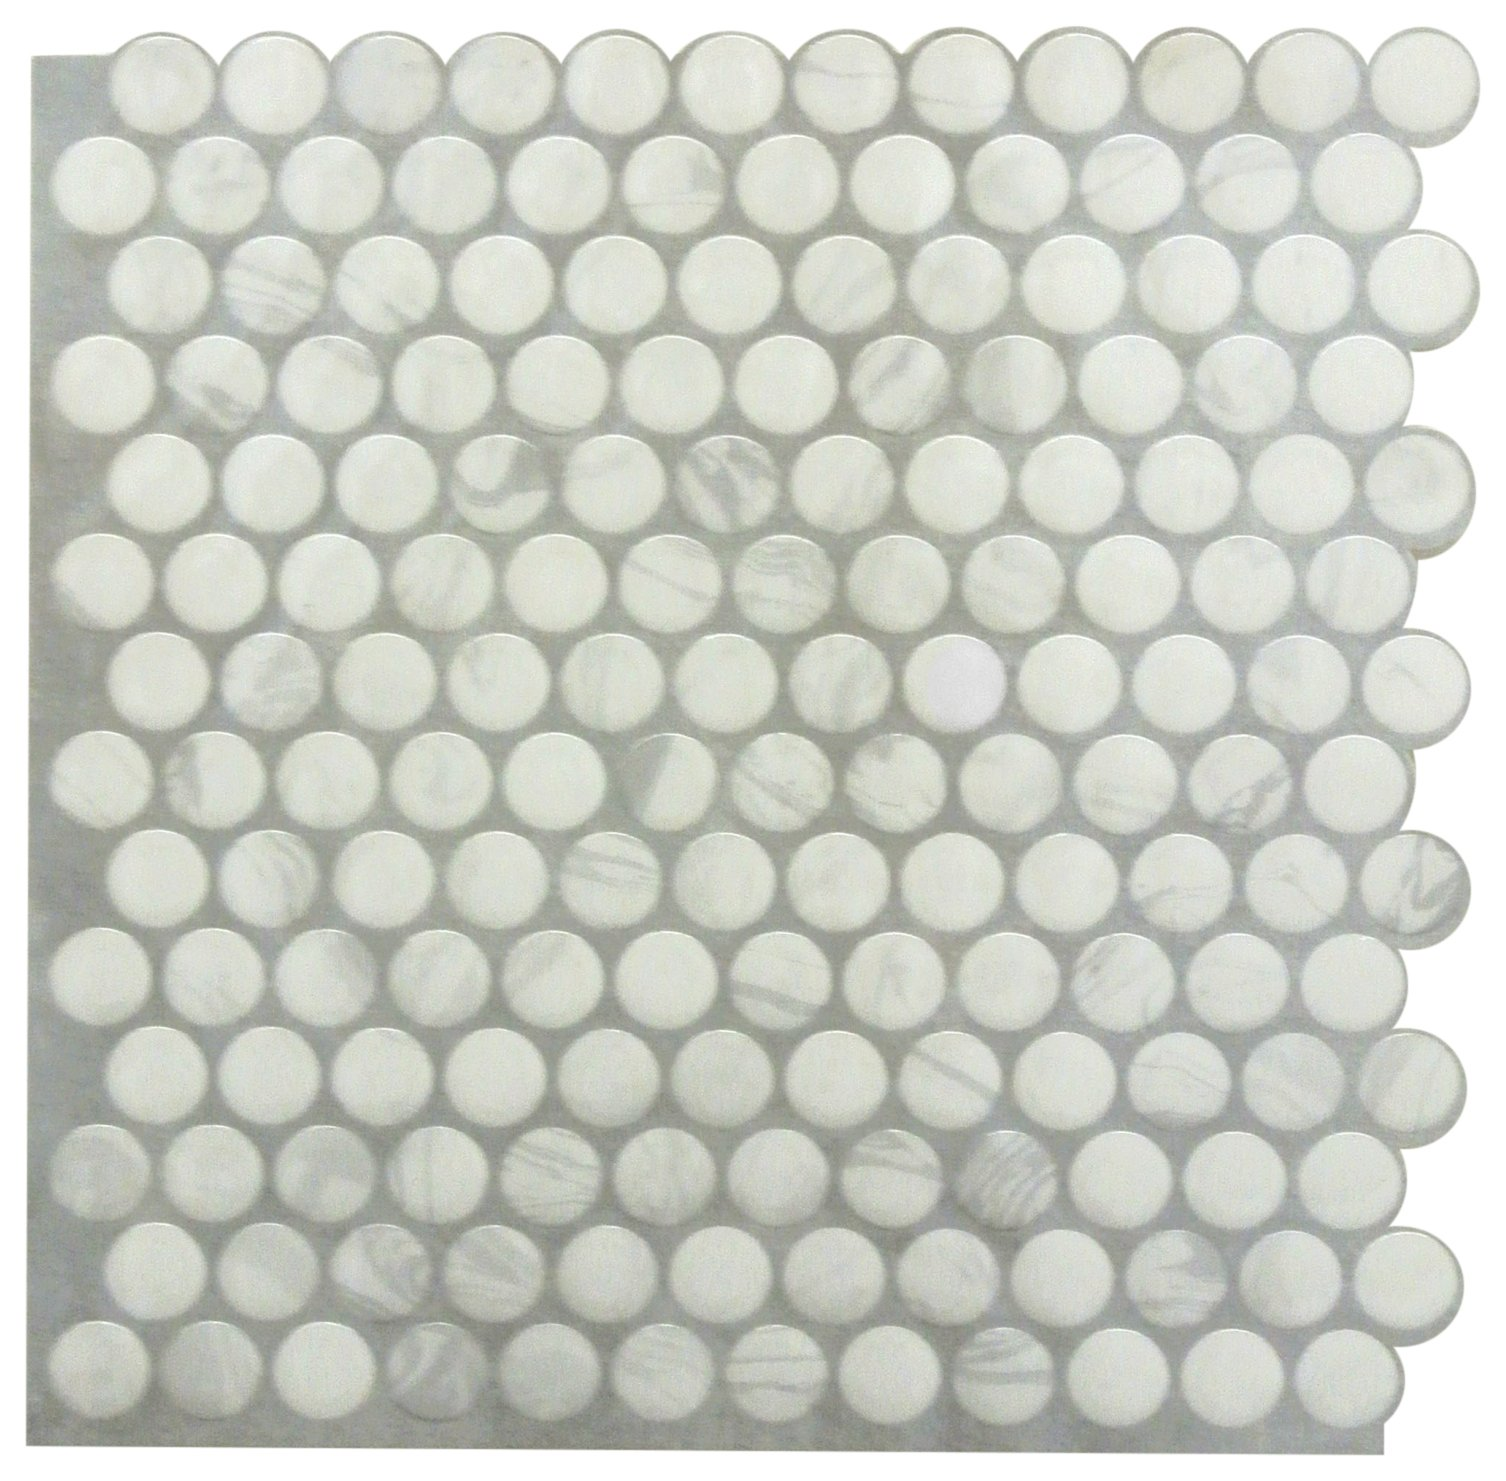 RoomMates TIL3463FLT Classic Marble Penny StickTILES - 4 Pack 10.5x10.5 white